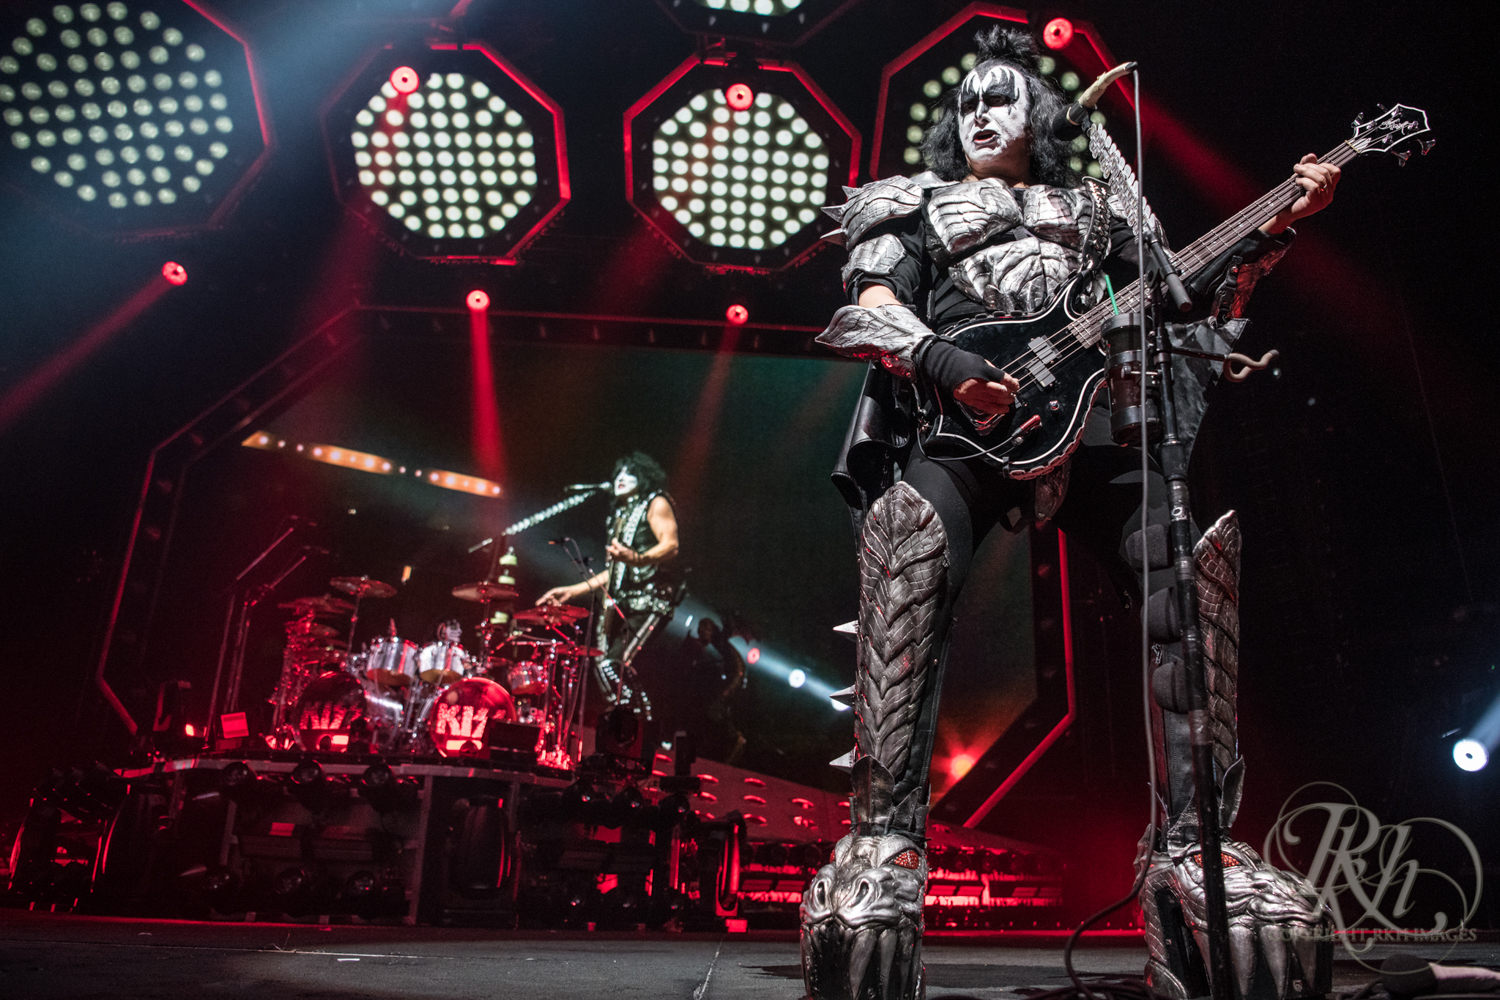 Kiss - End of the Road Tour - Target Center - Minneapolis - Concert Photography - RKH Images  (9 of 12).jpg